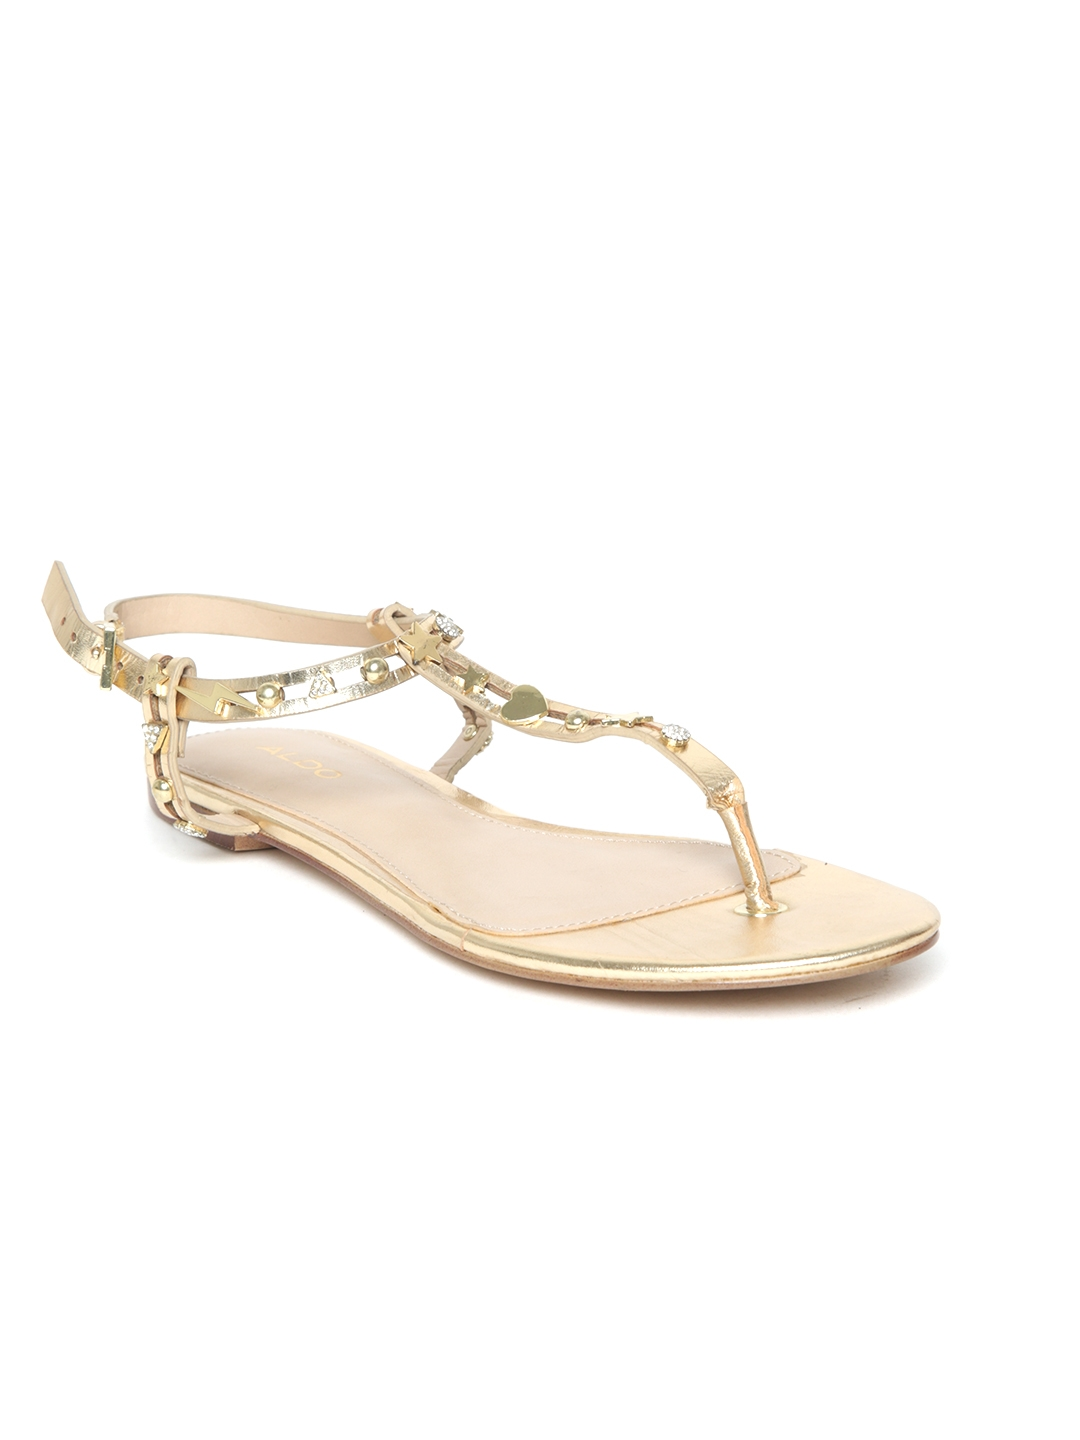 ab3c4810d2279a Buy ALDO Women Gold Toned Embellished T Strap Flats - Flats for ...